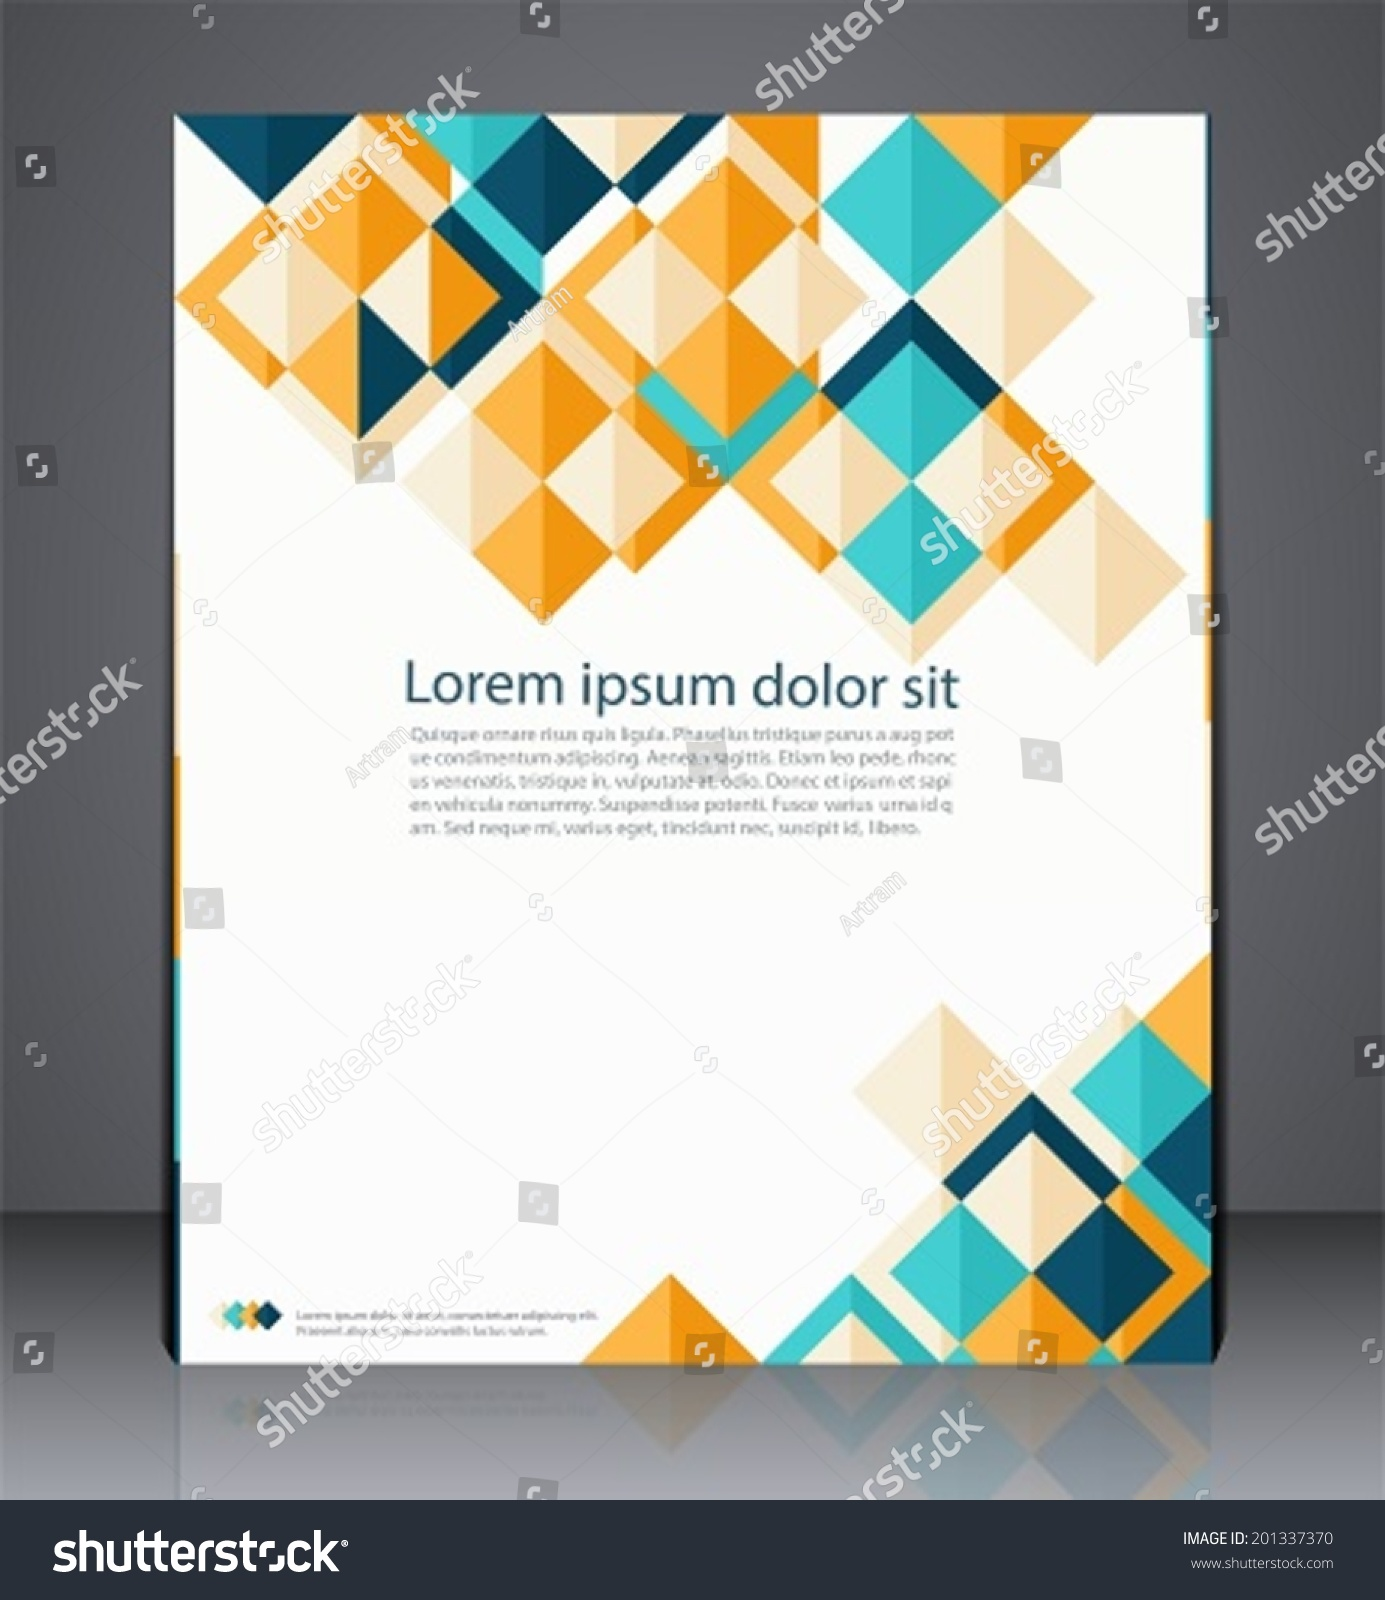 vector layout business flyer magazine cover stock vector  vector layout business flyer magazine cover or corporate geometric design template advertisement